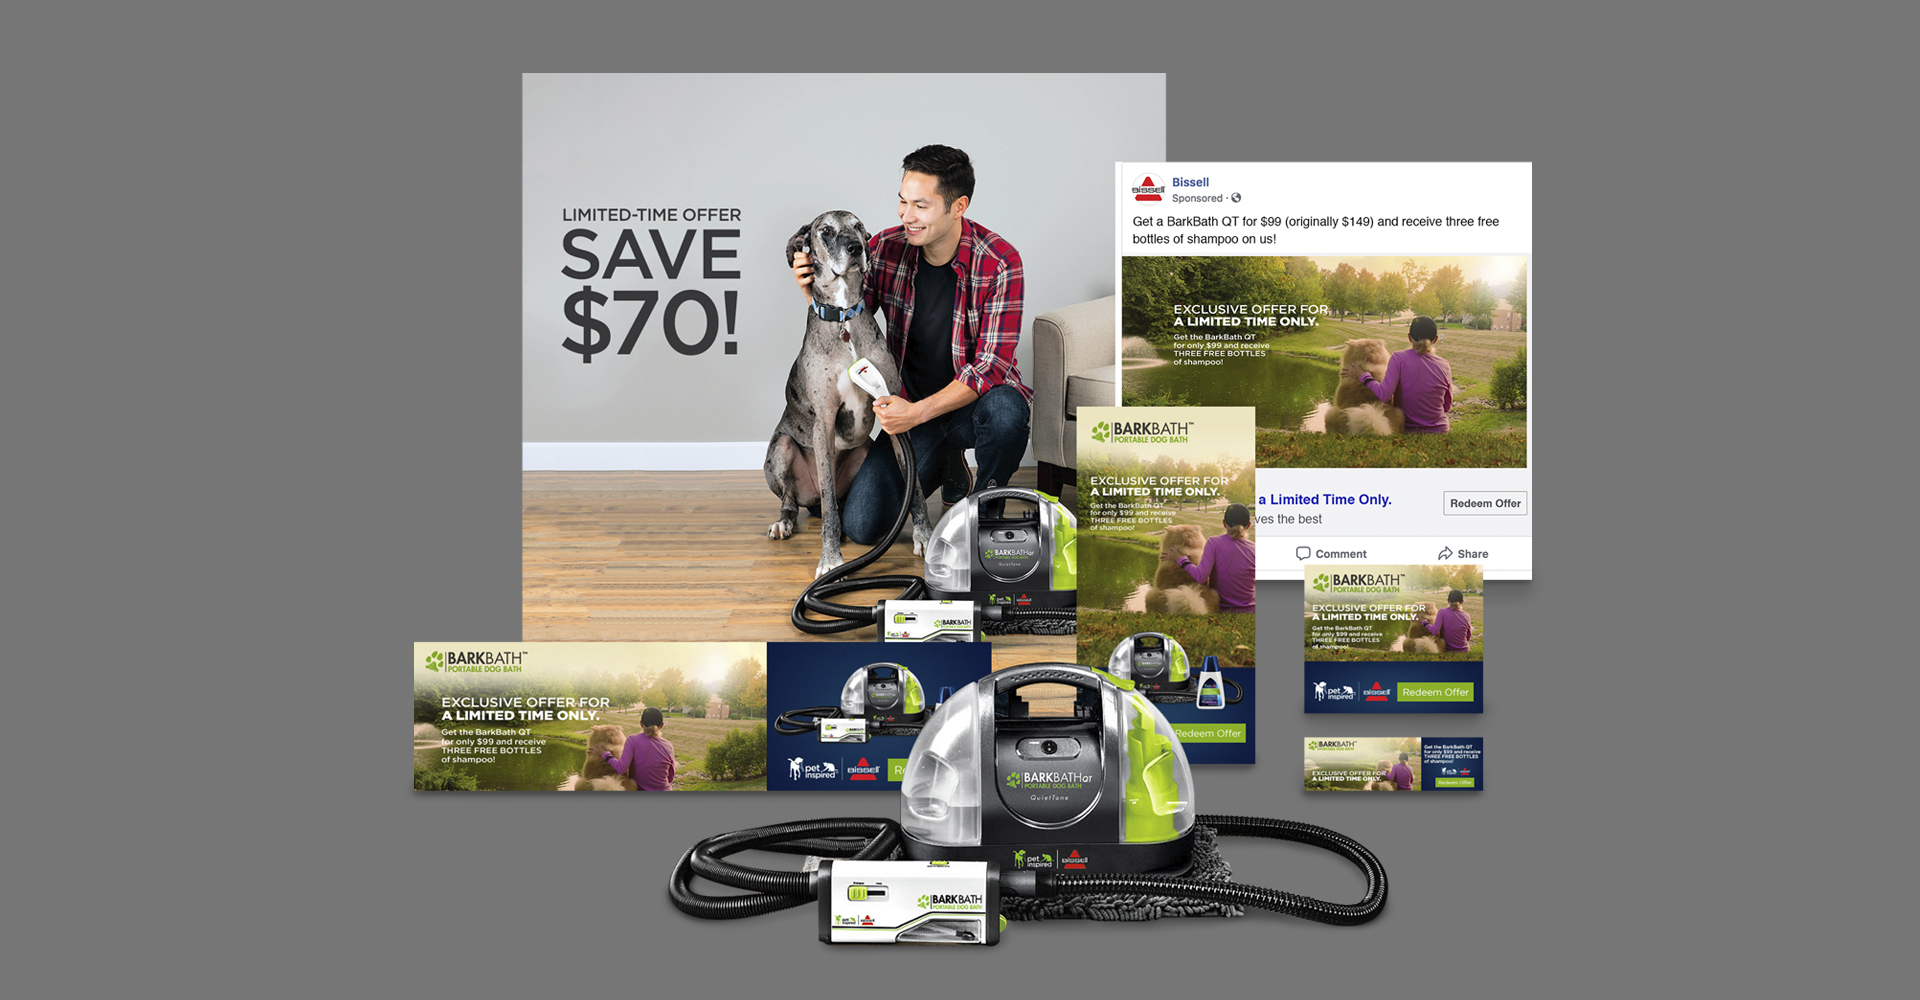 BISSELL BARKBATH™ Product Launch Campaign ad, social and layout design by Blue Flame Thinking